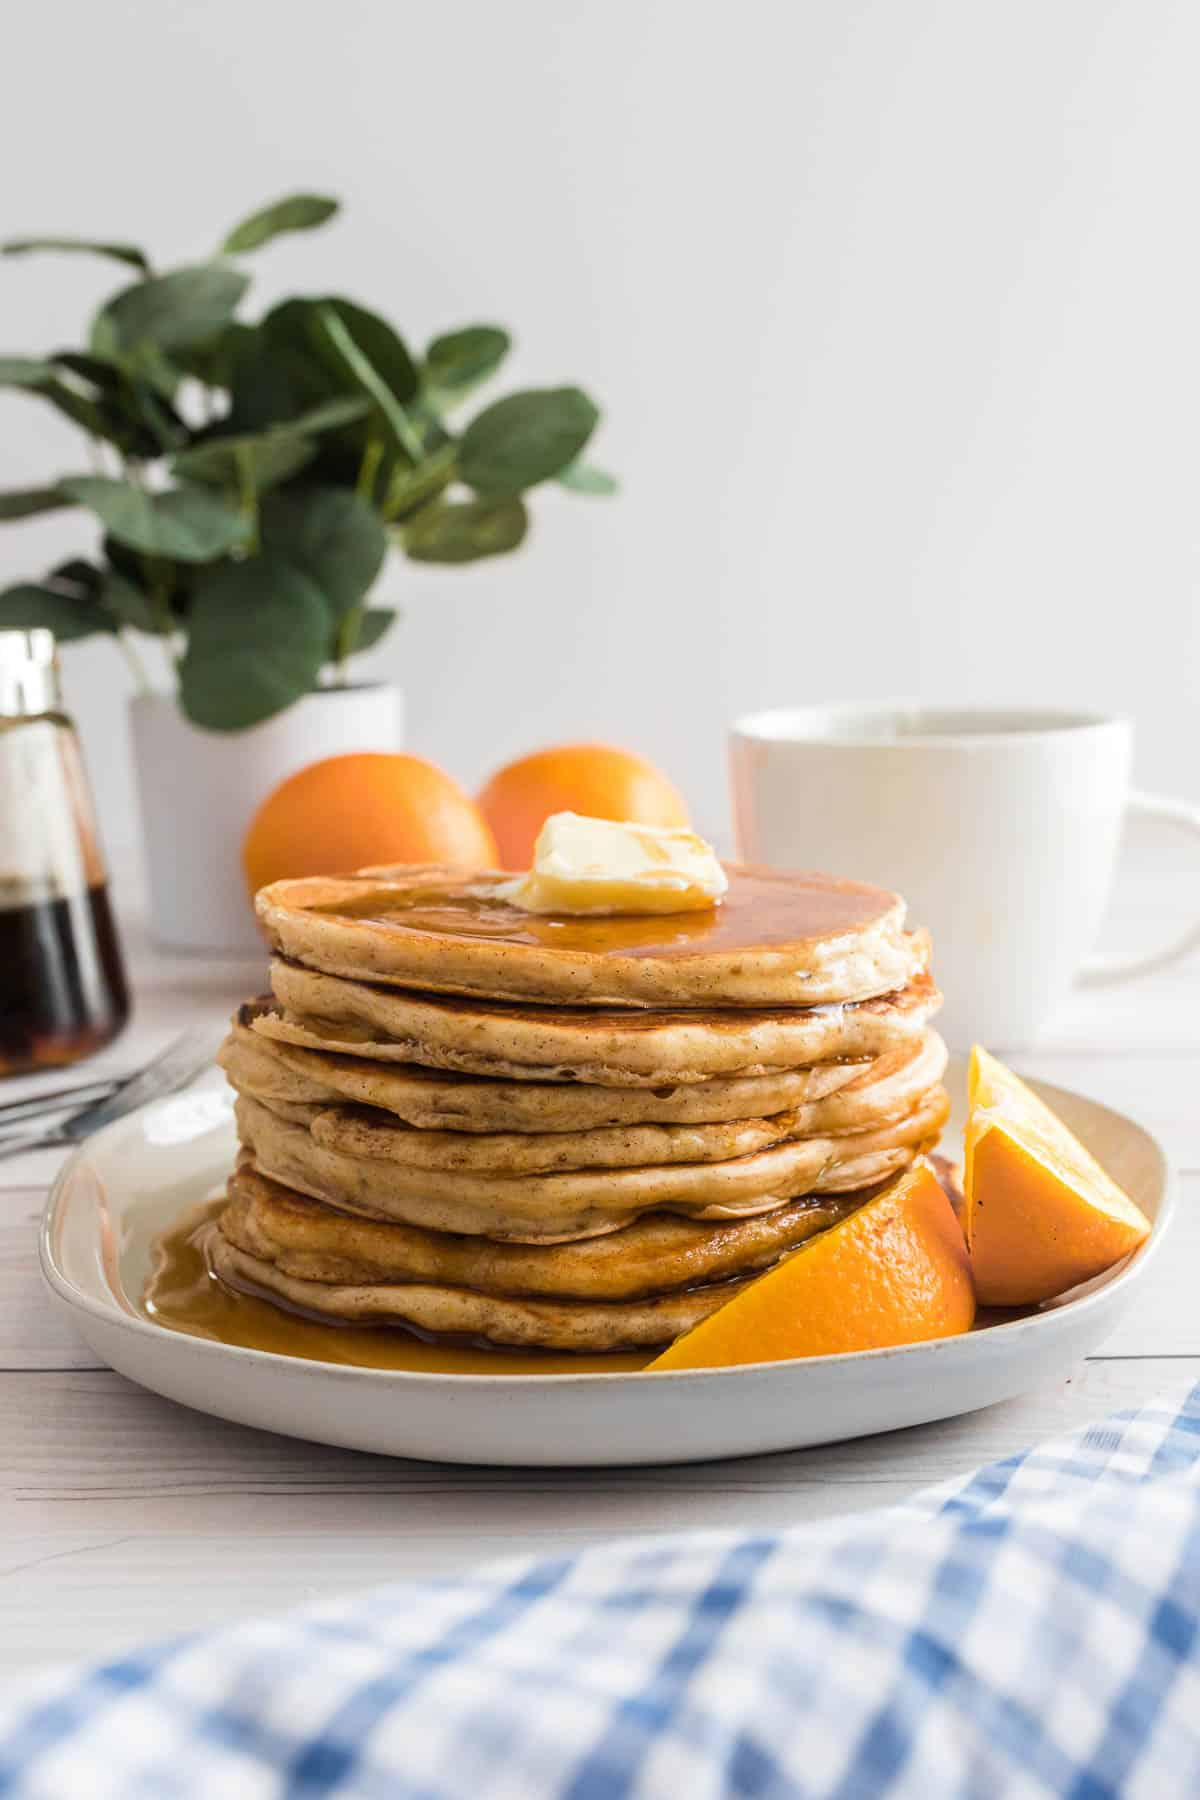 Stack of orange pancakes on a white plate.